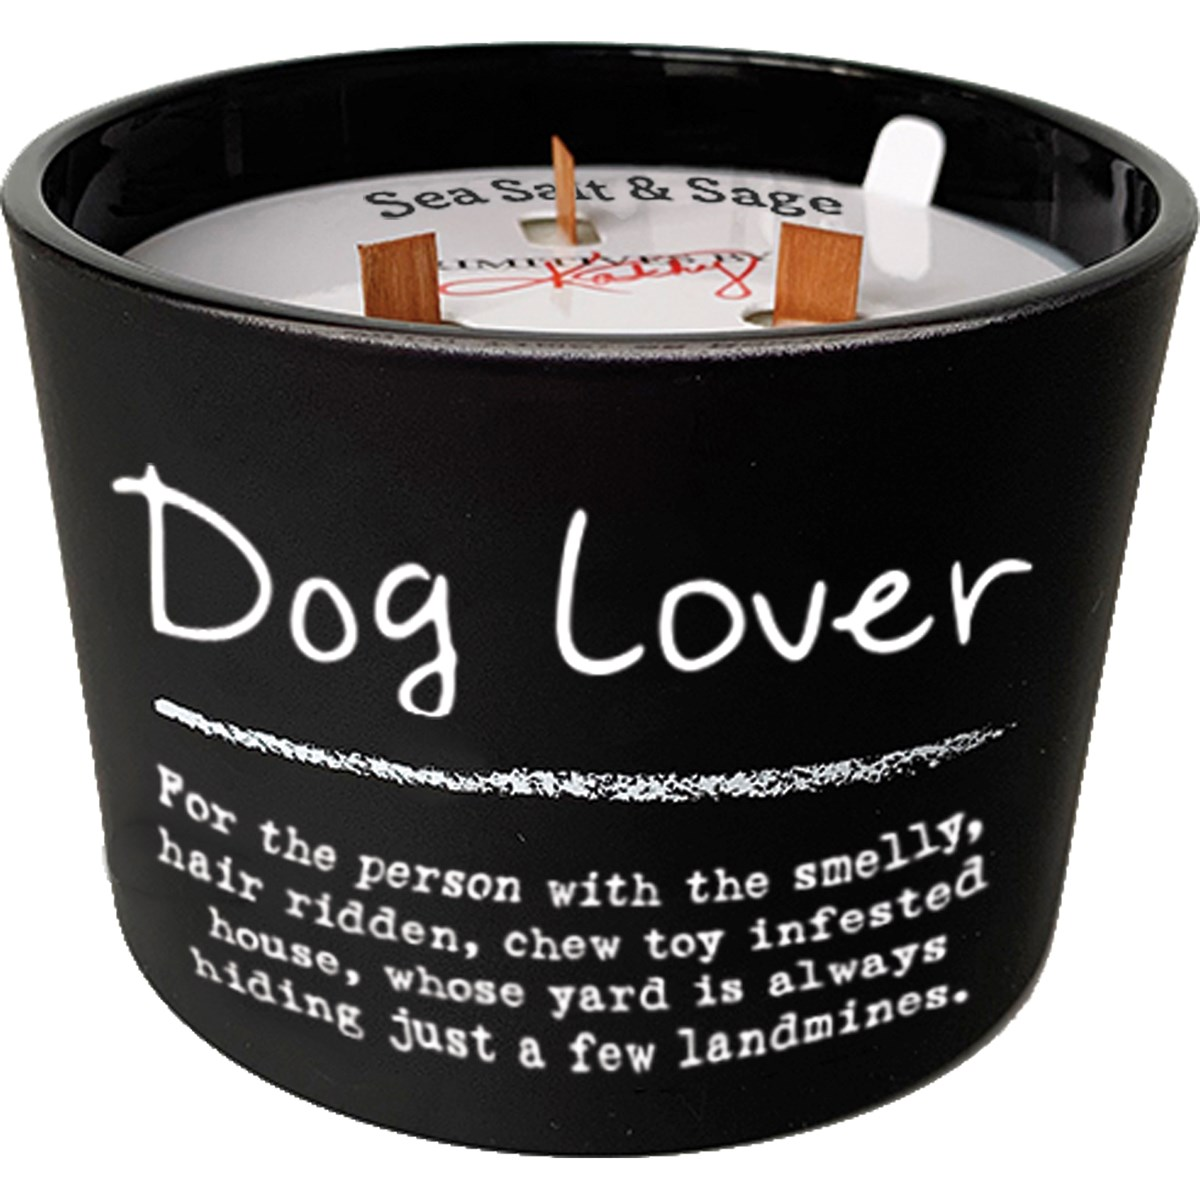 "Jar Candle - Dog Lover - 4.50"" Diameter x 3.50"" - Glass, Soy Wax, Wood"